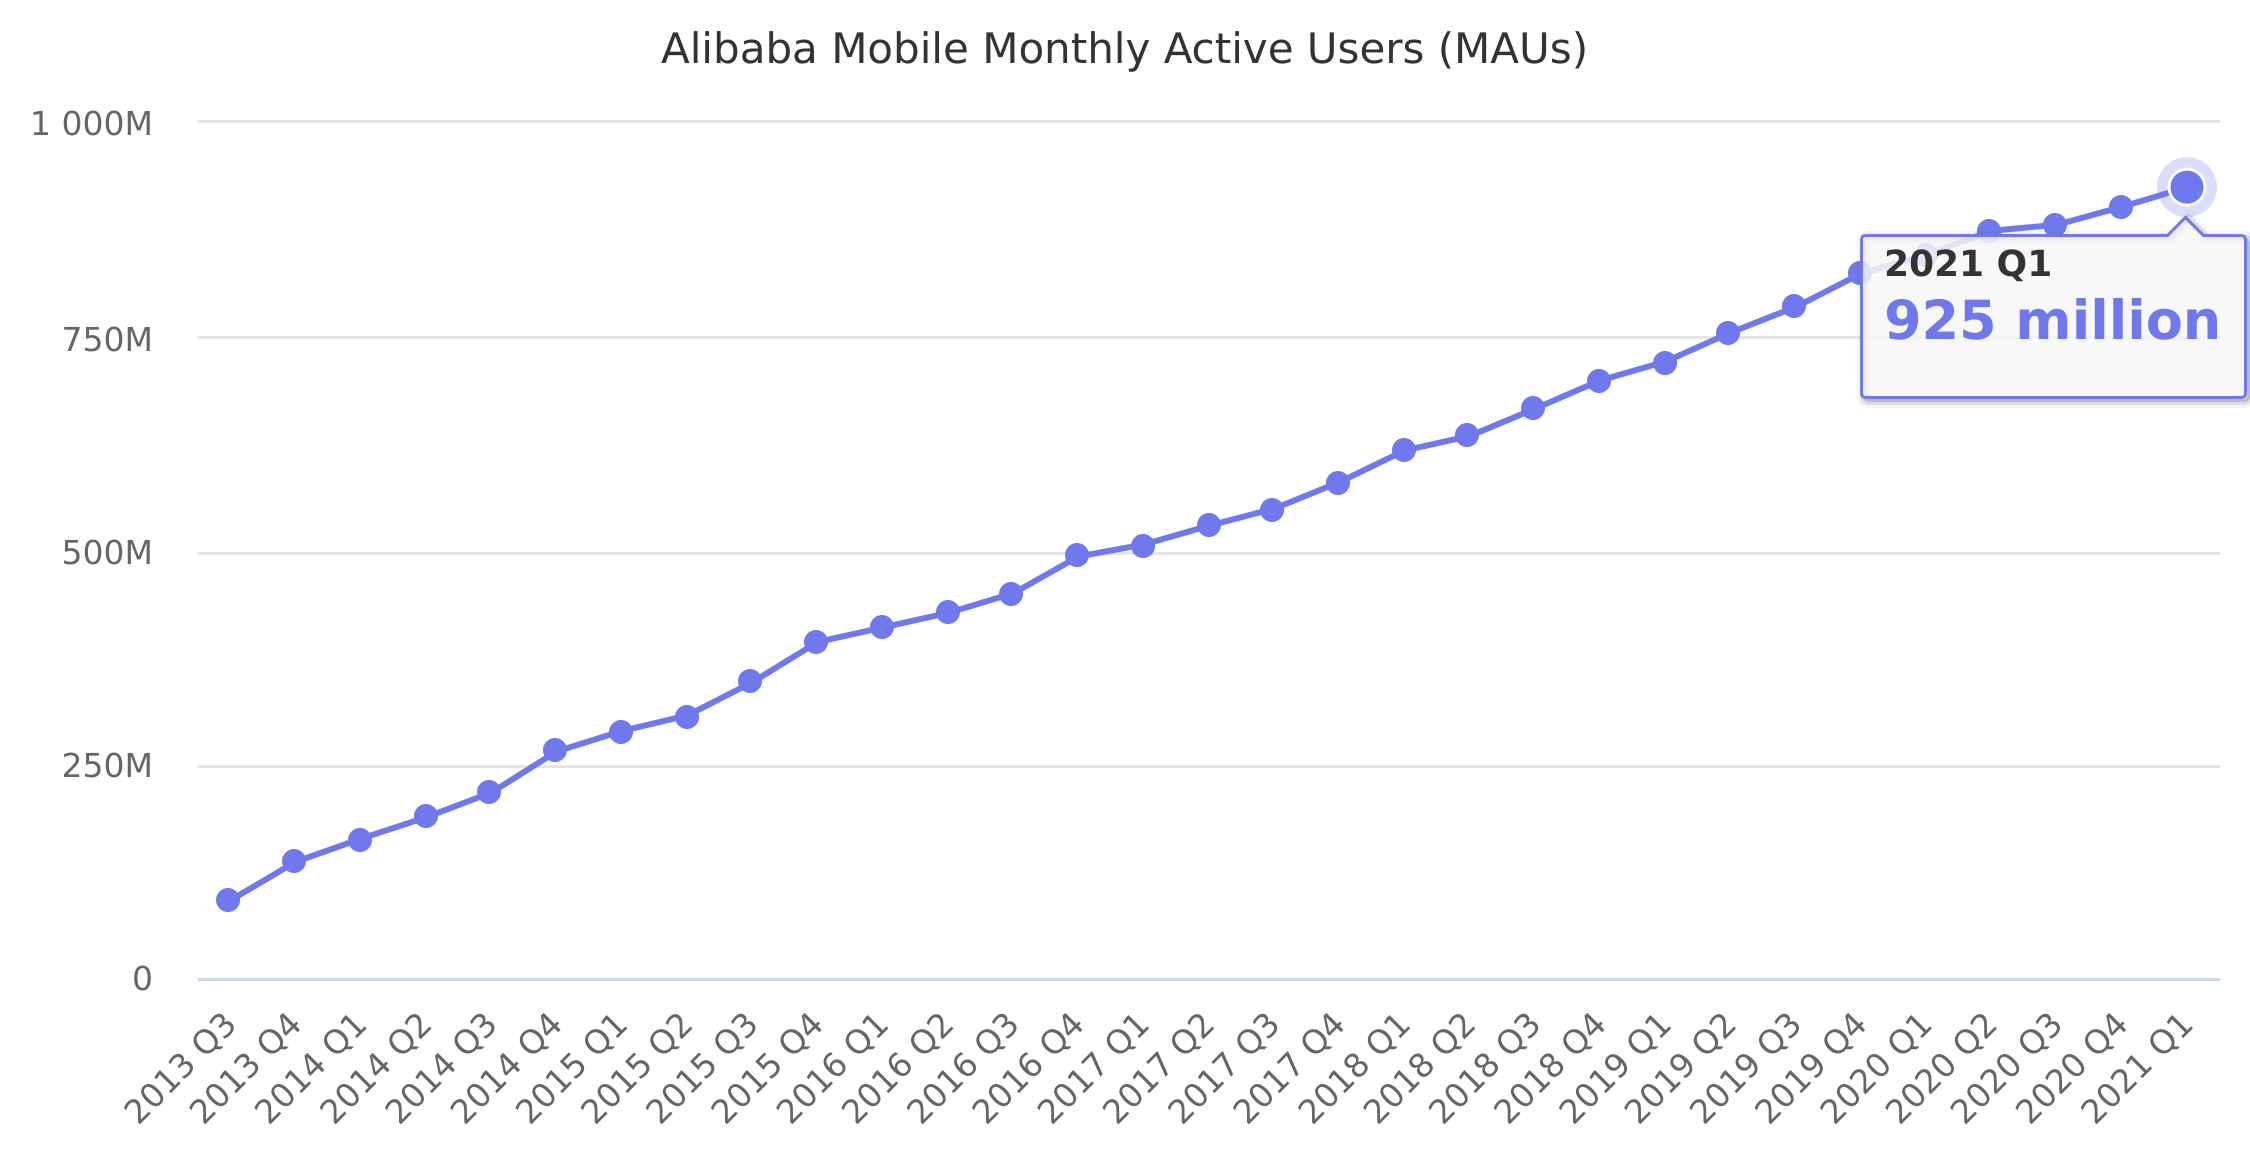 Alibaba Mobile Monthly Active Users (MAUs) 2013-2018